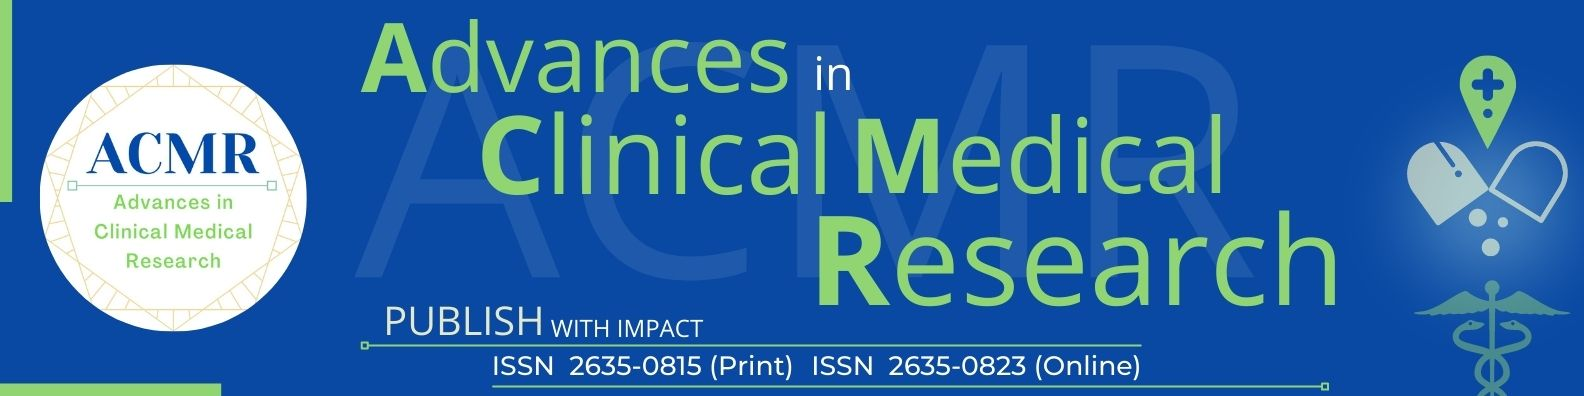 Advances in Clinical Medical Research (ACMR)